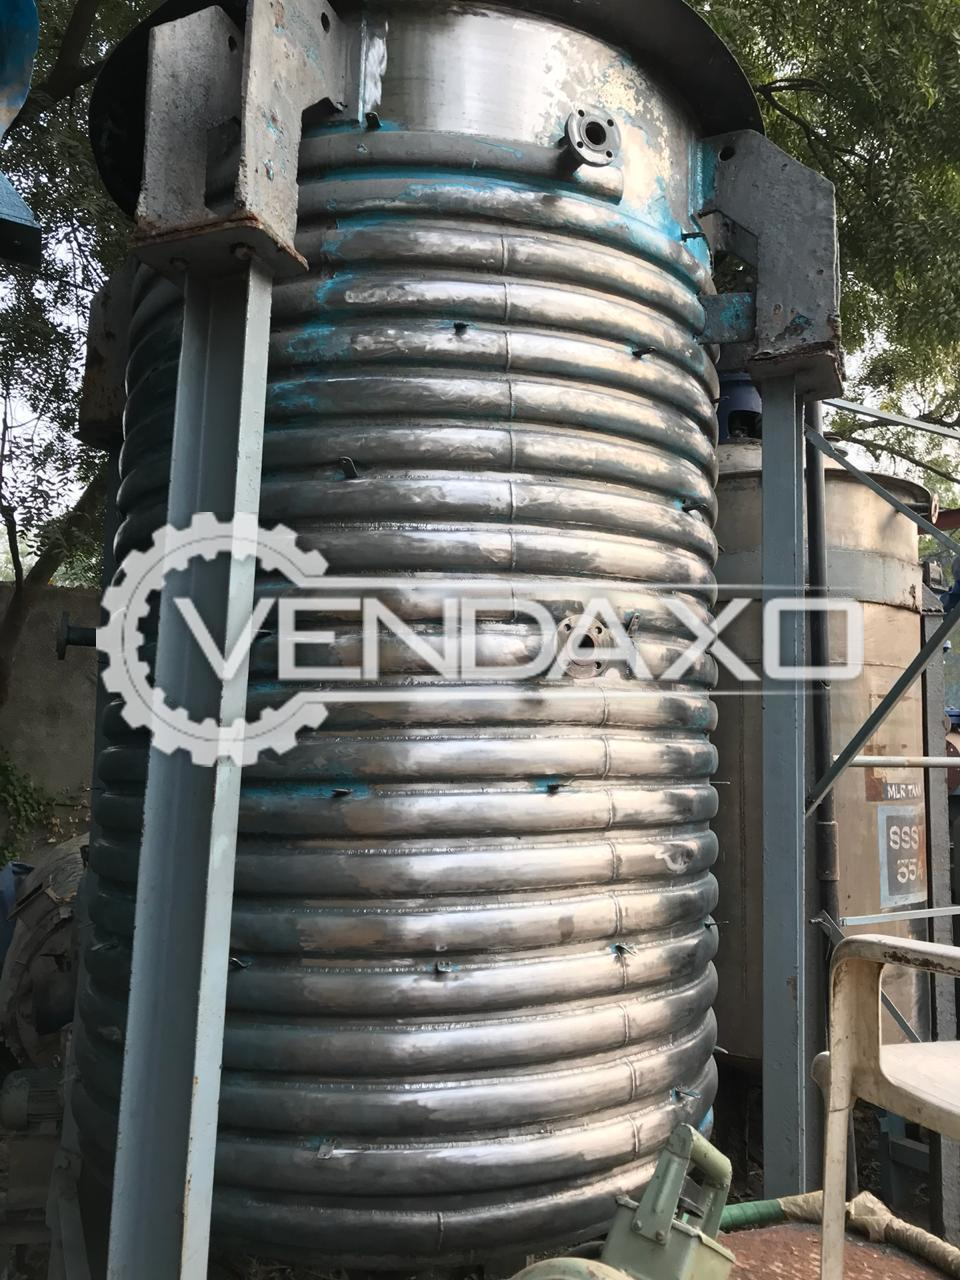 SS 316 Limped Reactor - 5 KL